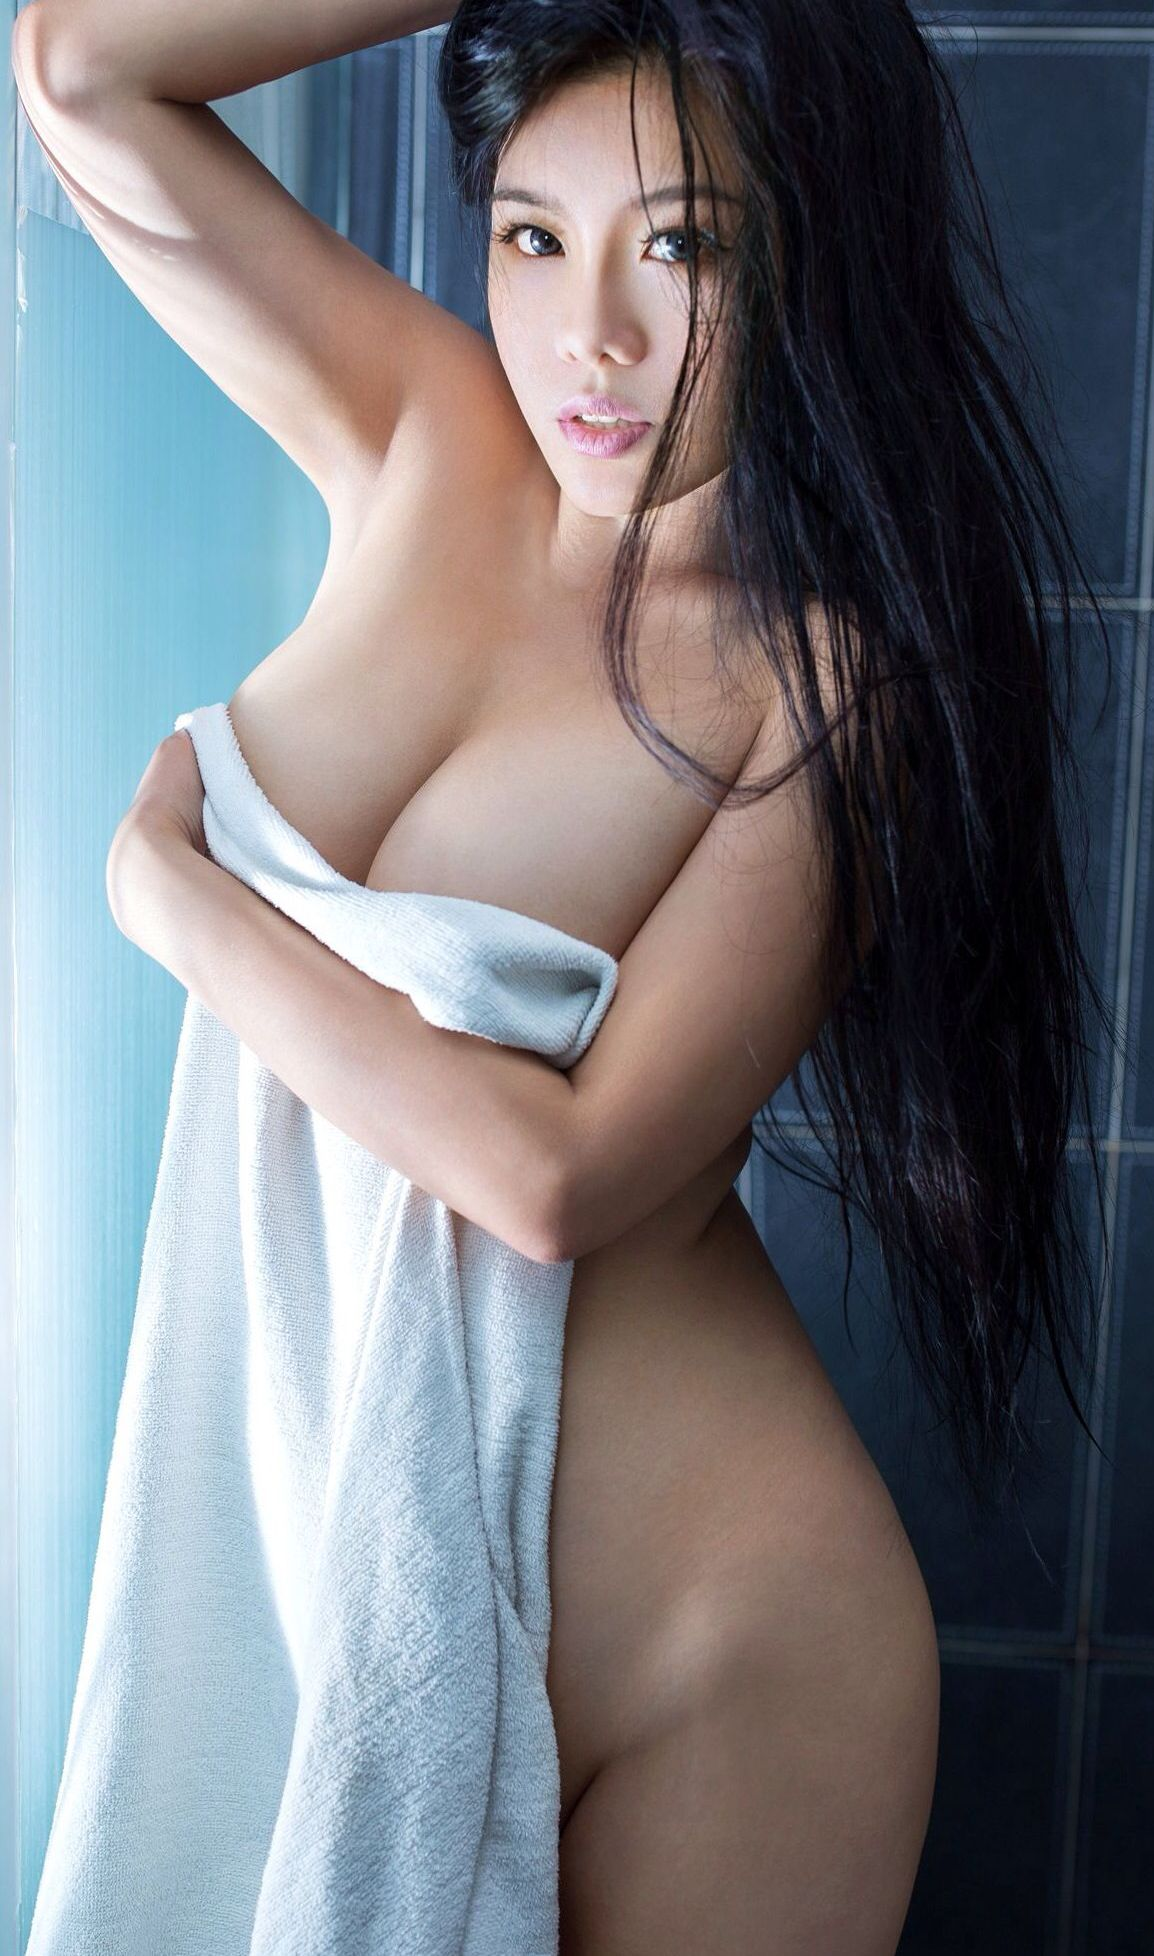 Hottest And Sexiest Best Escort In Mumbai Available.